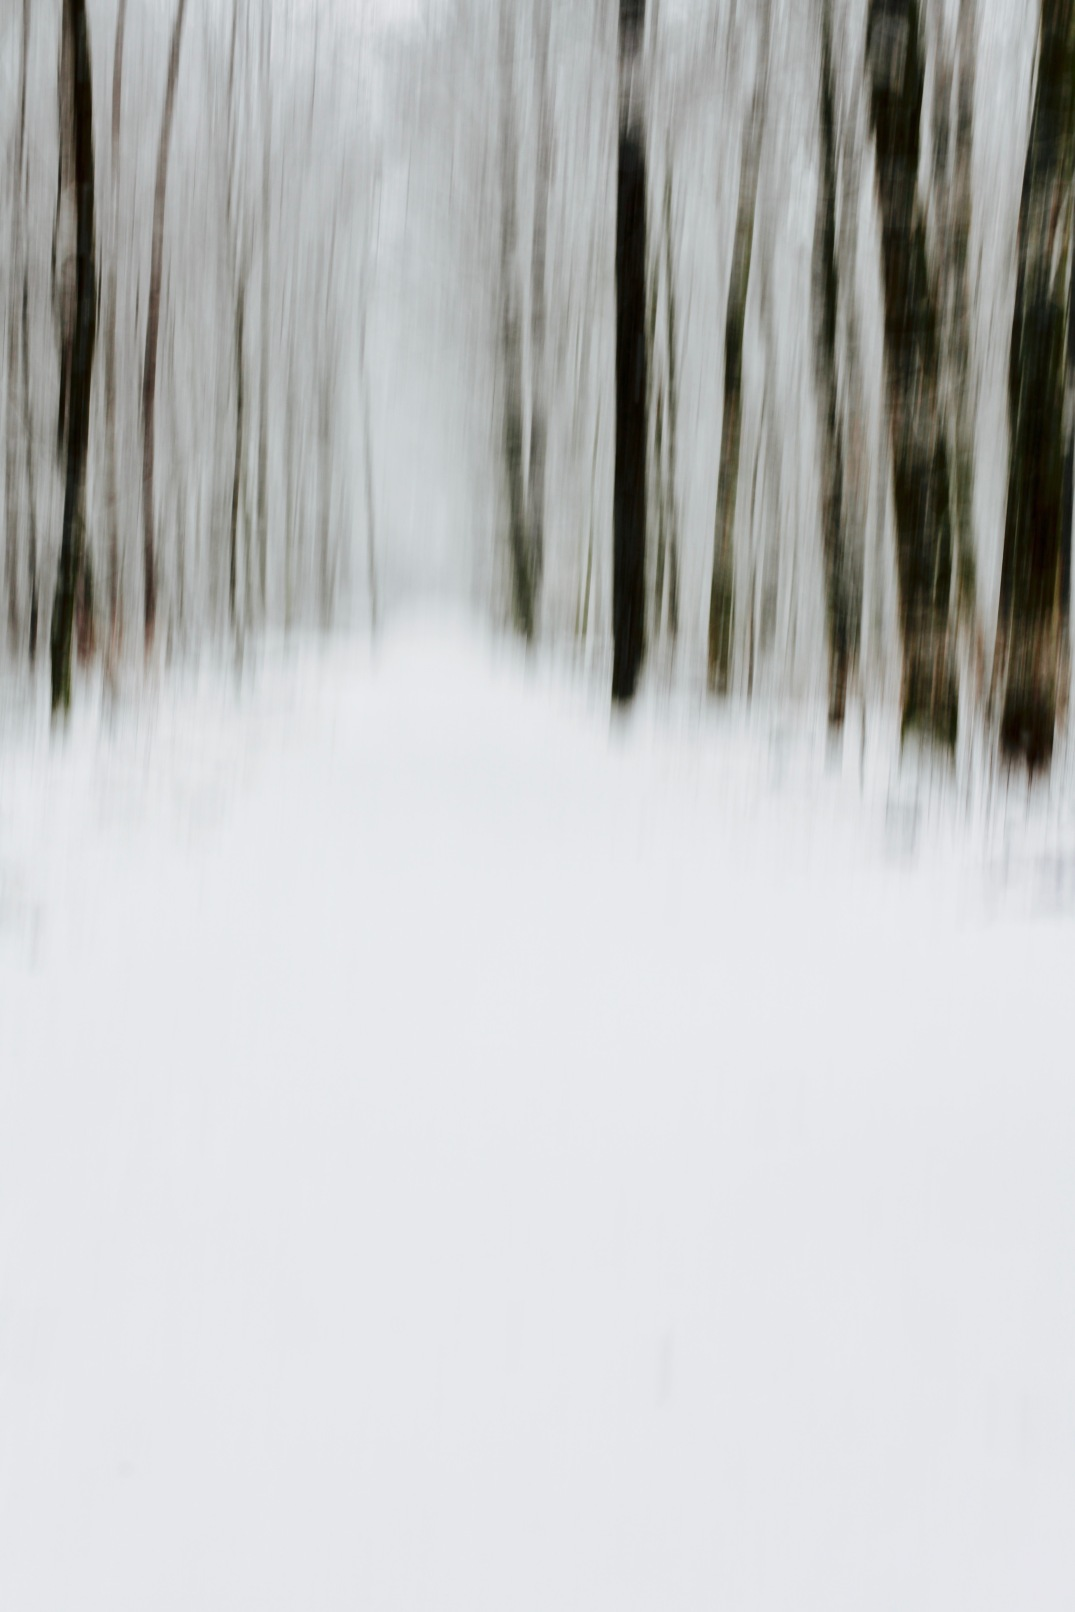 snowy woods - blurry on purpose